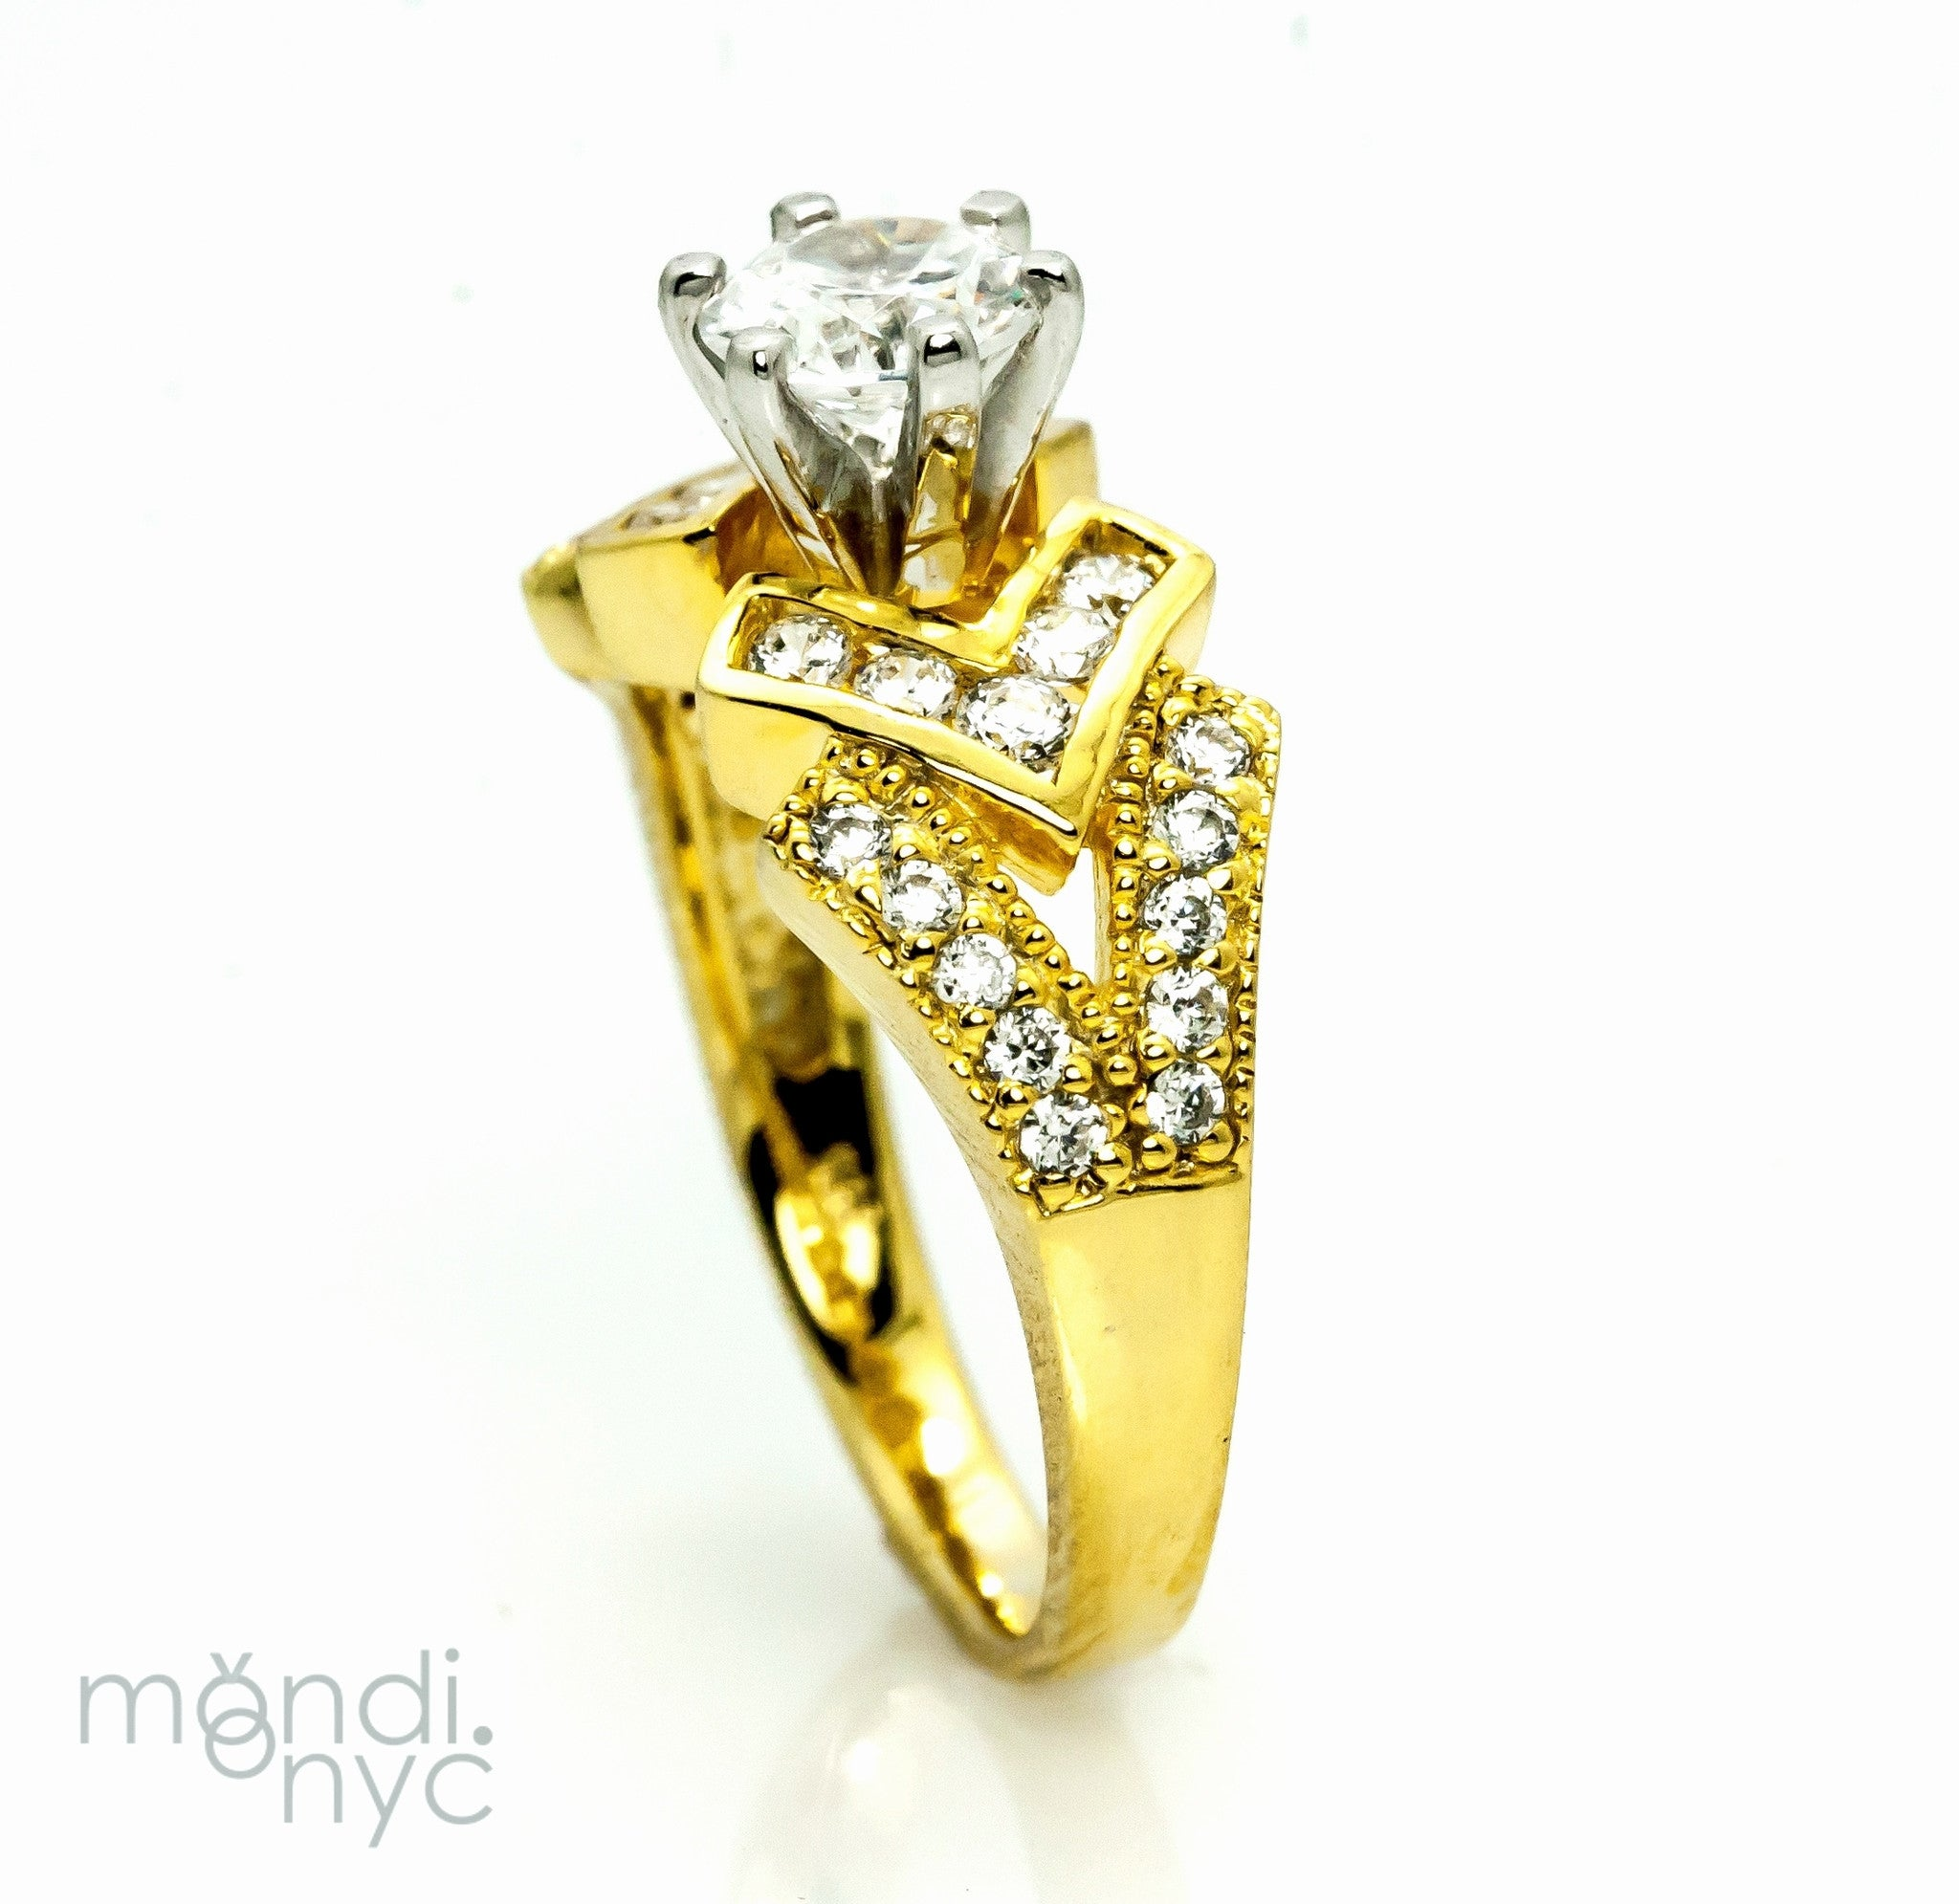 Semi Mount For 1 Carat Center Stone With .58 Carat Diamonds, Unique Design, Engagement Ring, Anniversary Ring - Y1864